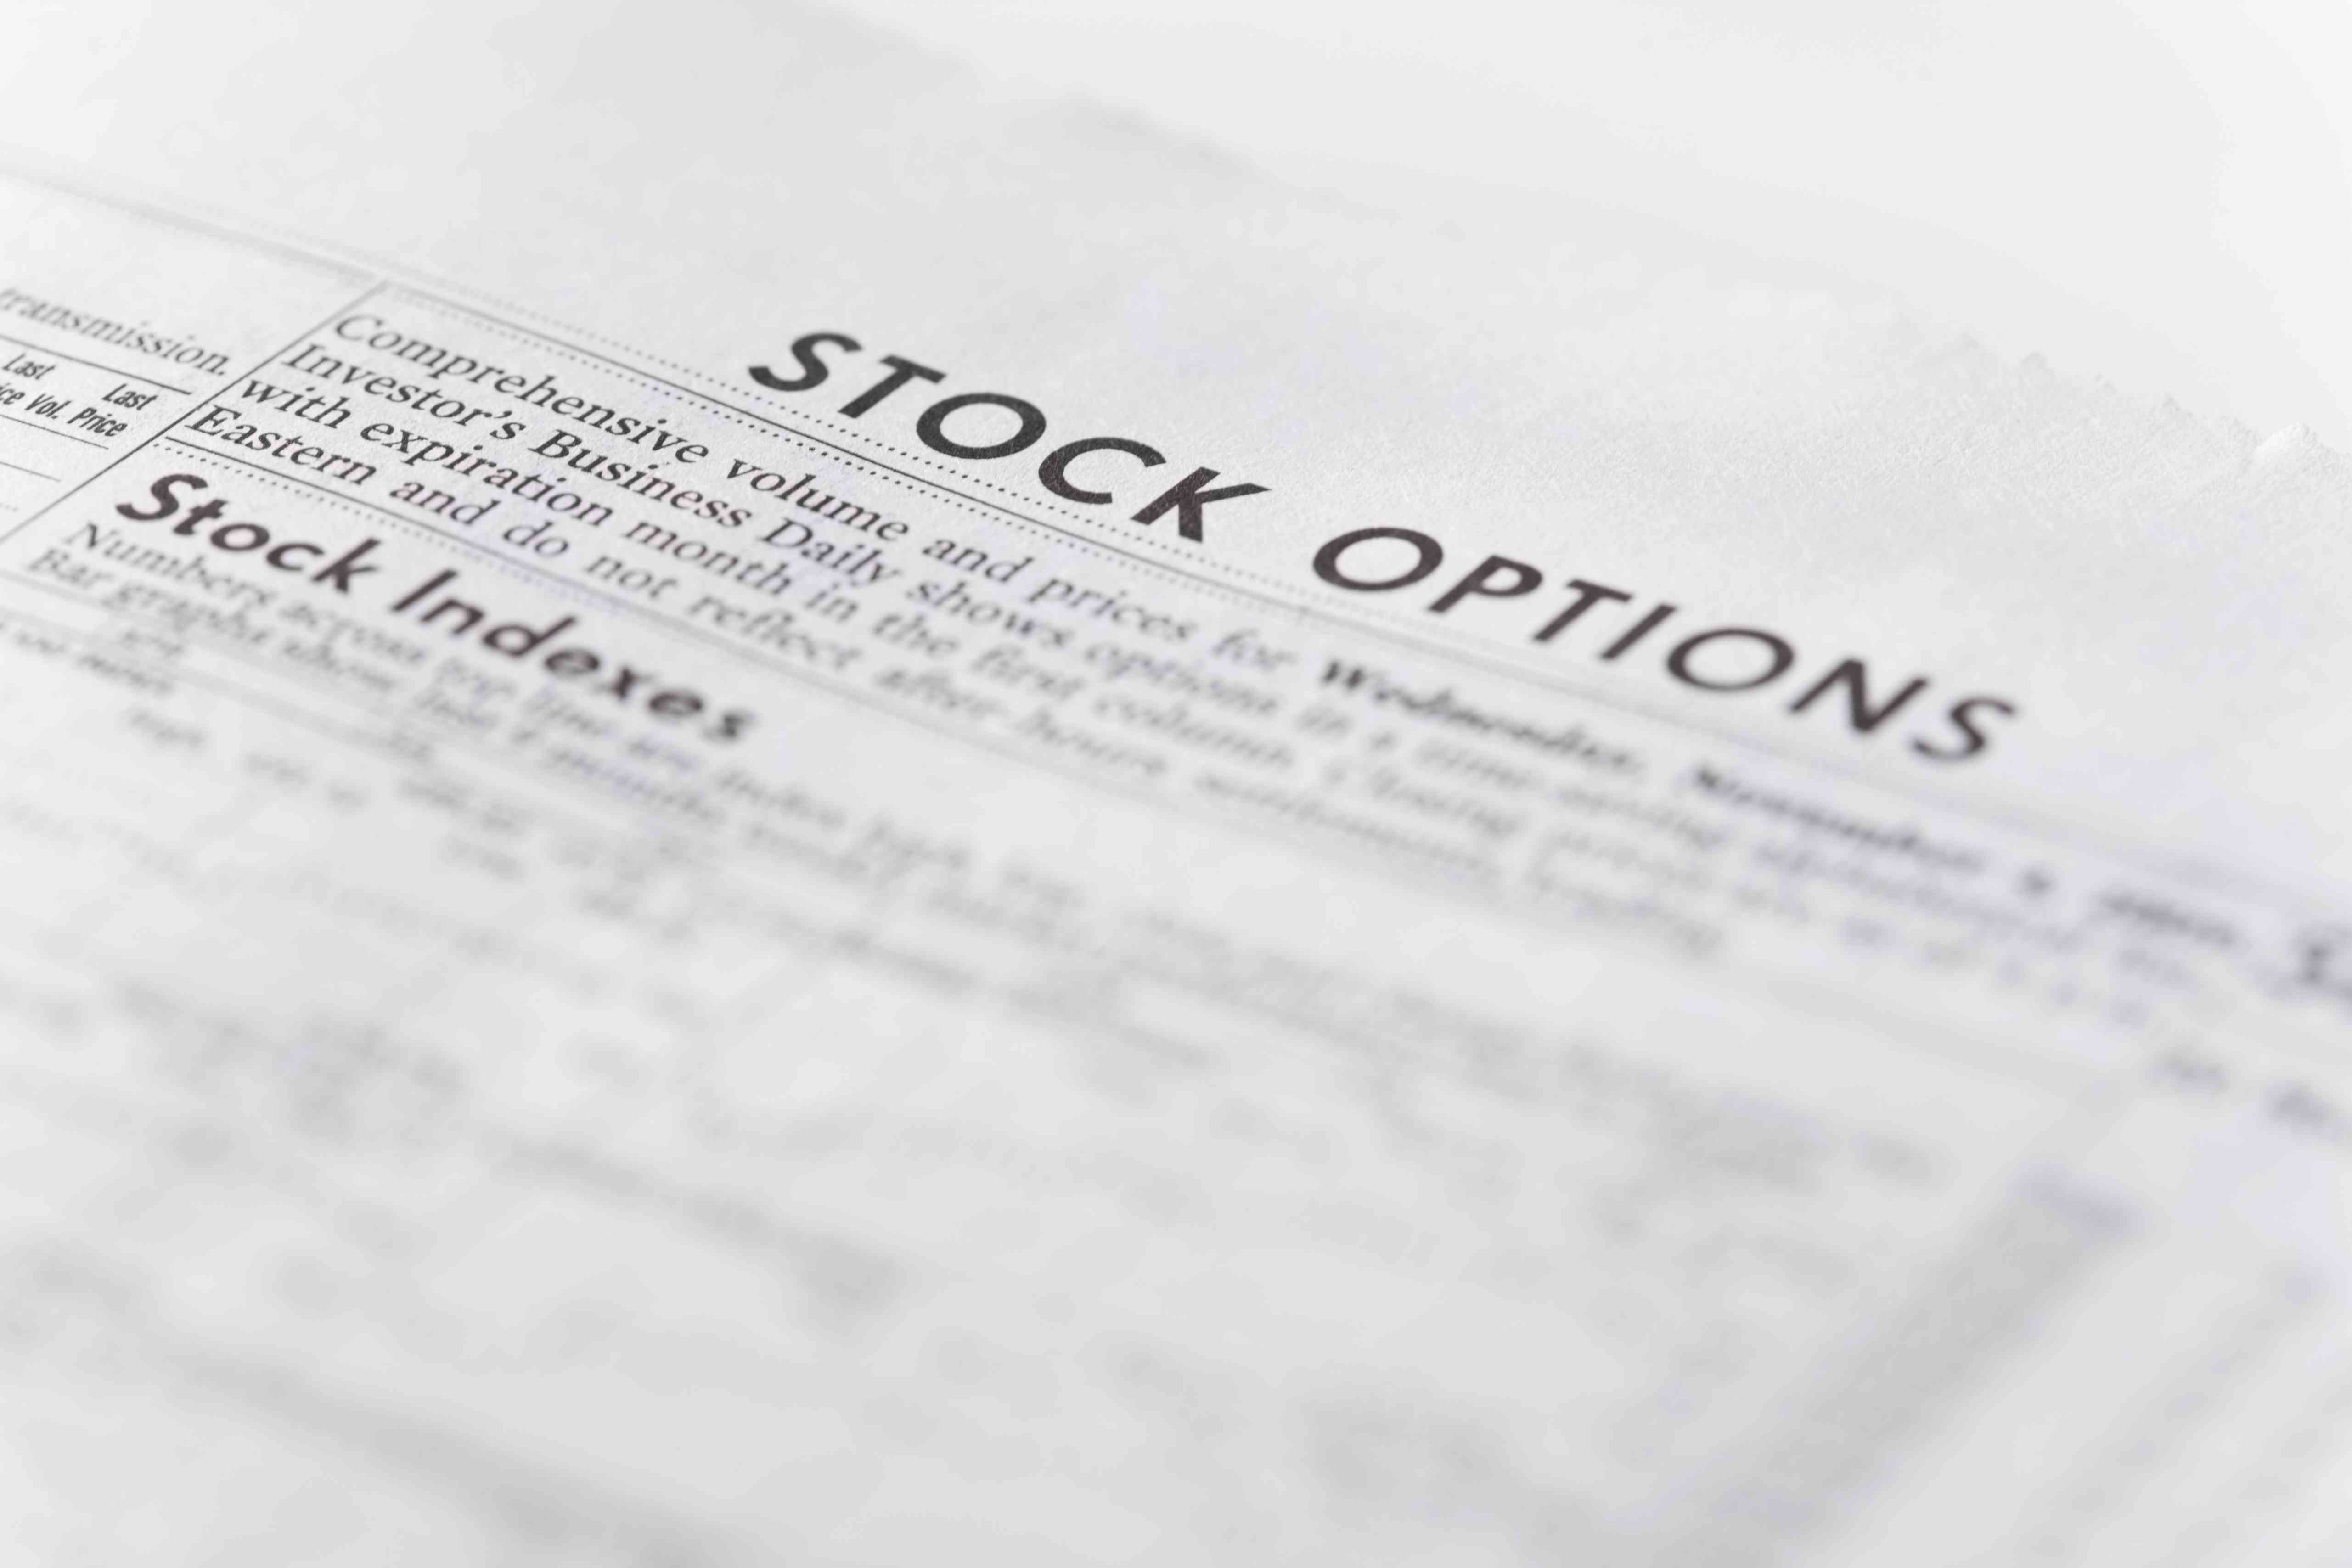 Paper showing stock options